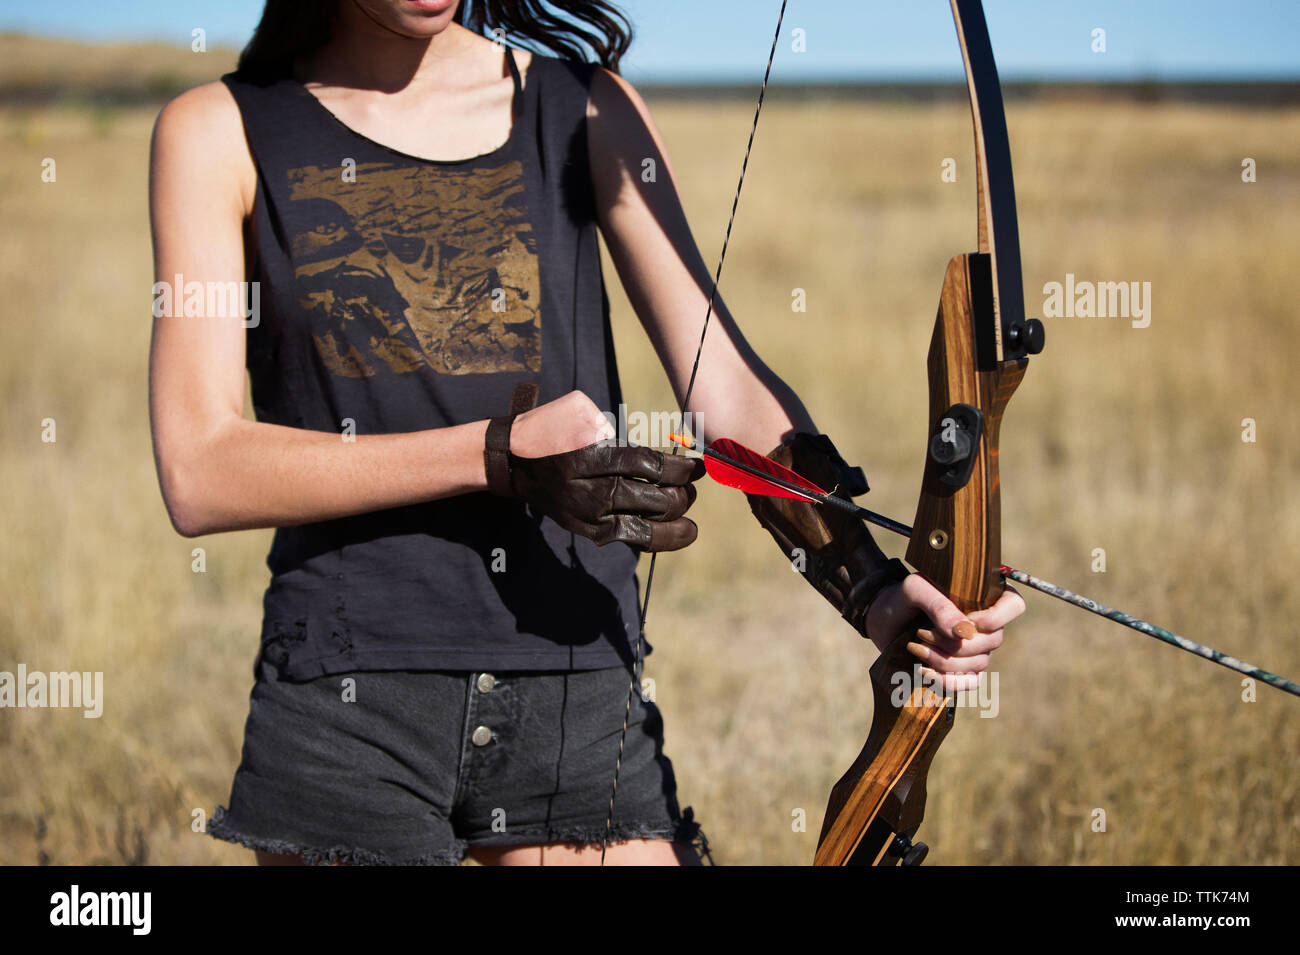 080a27d66ffb Woman Hunting Bow And Arrow Stock Photos & Woman Hunting Bow And ...